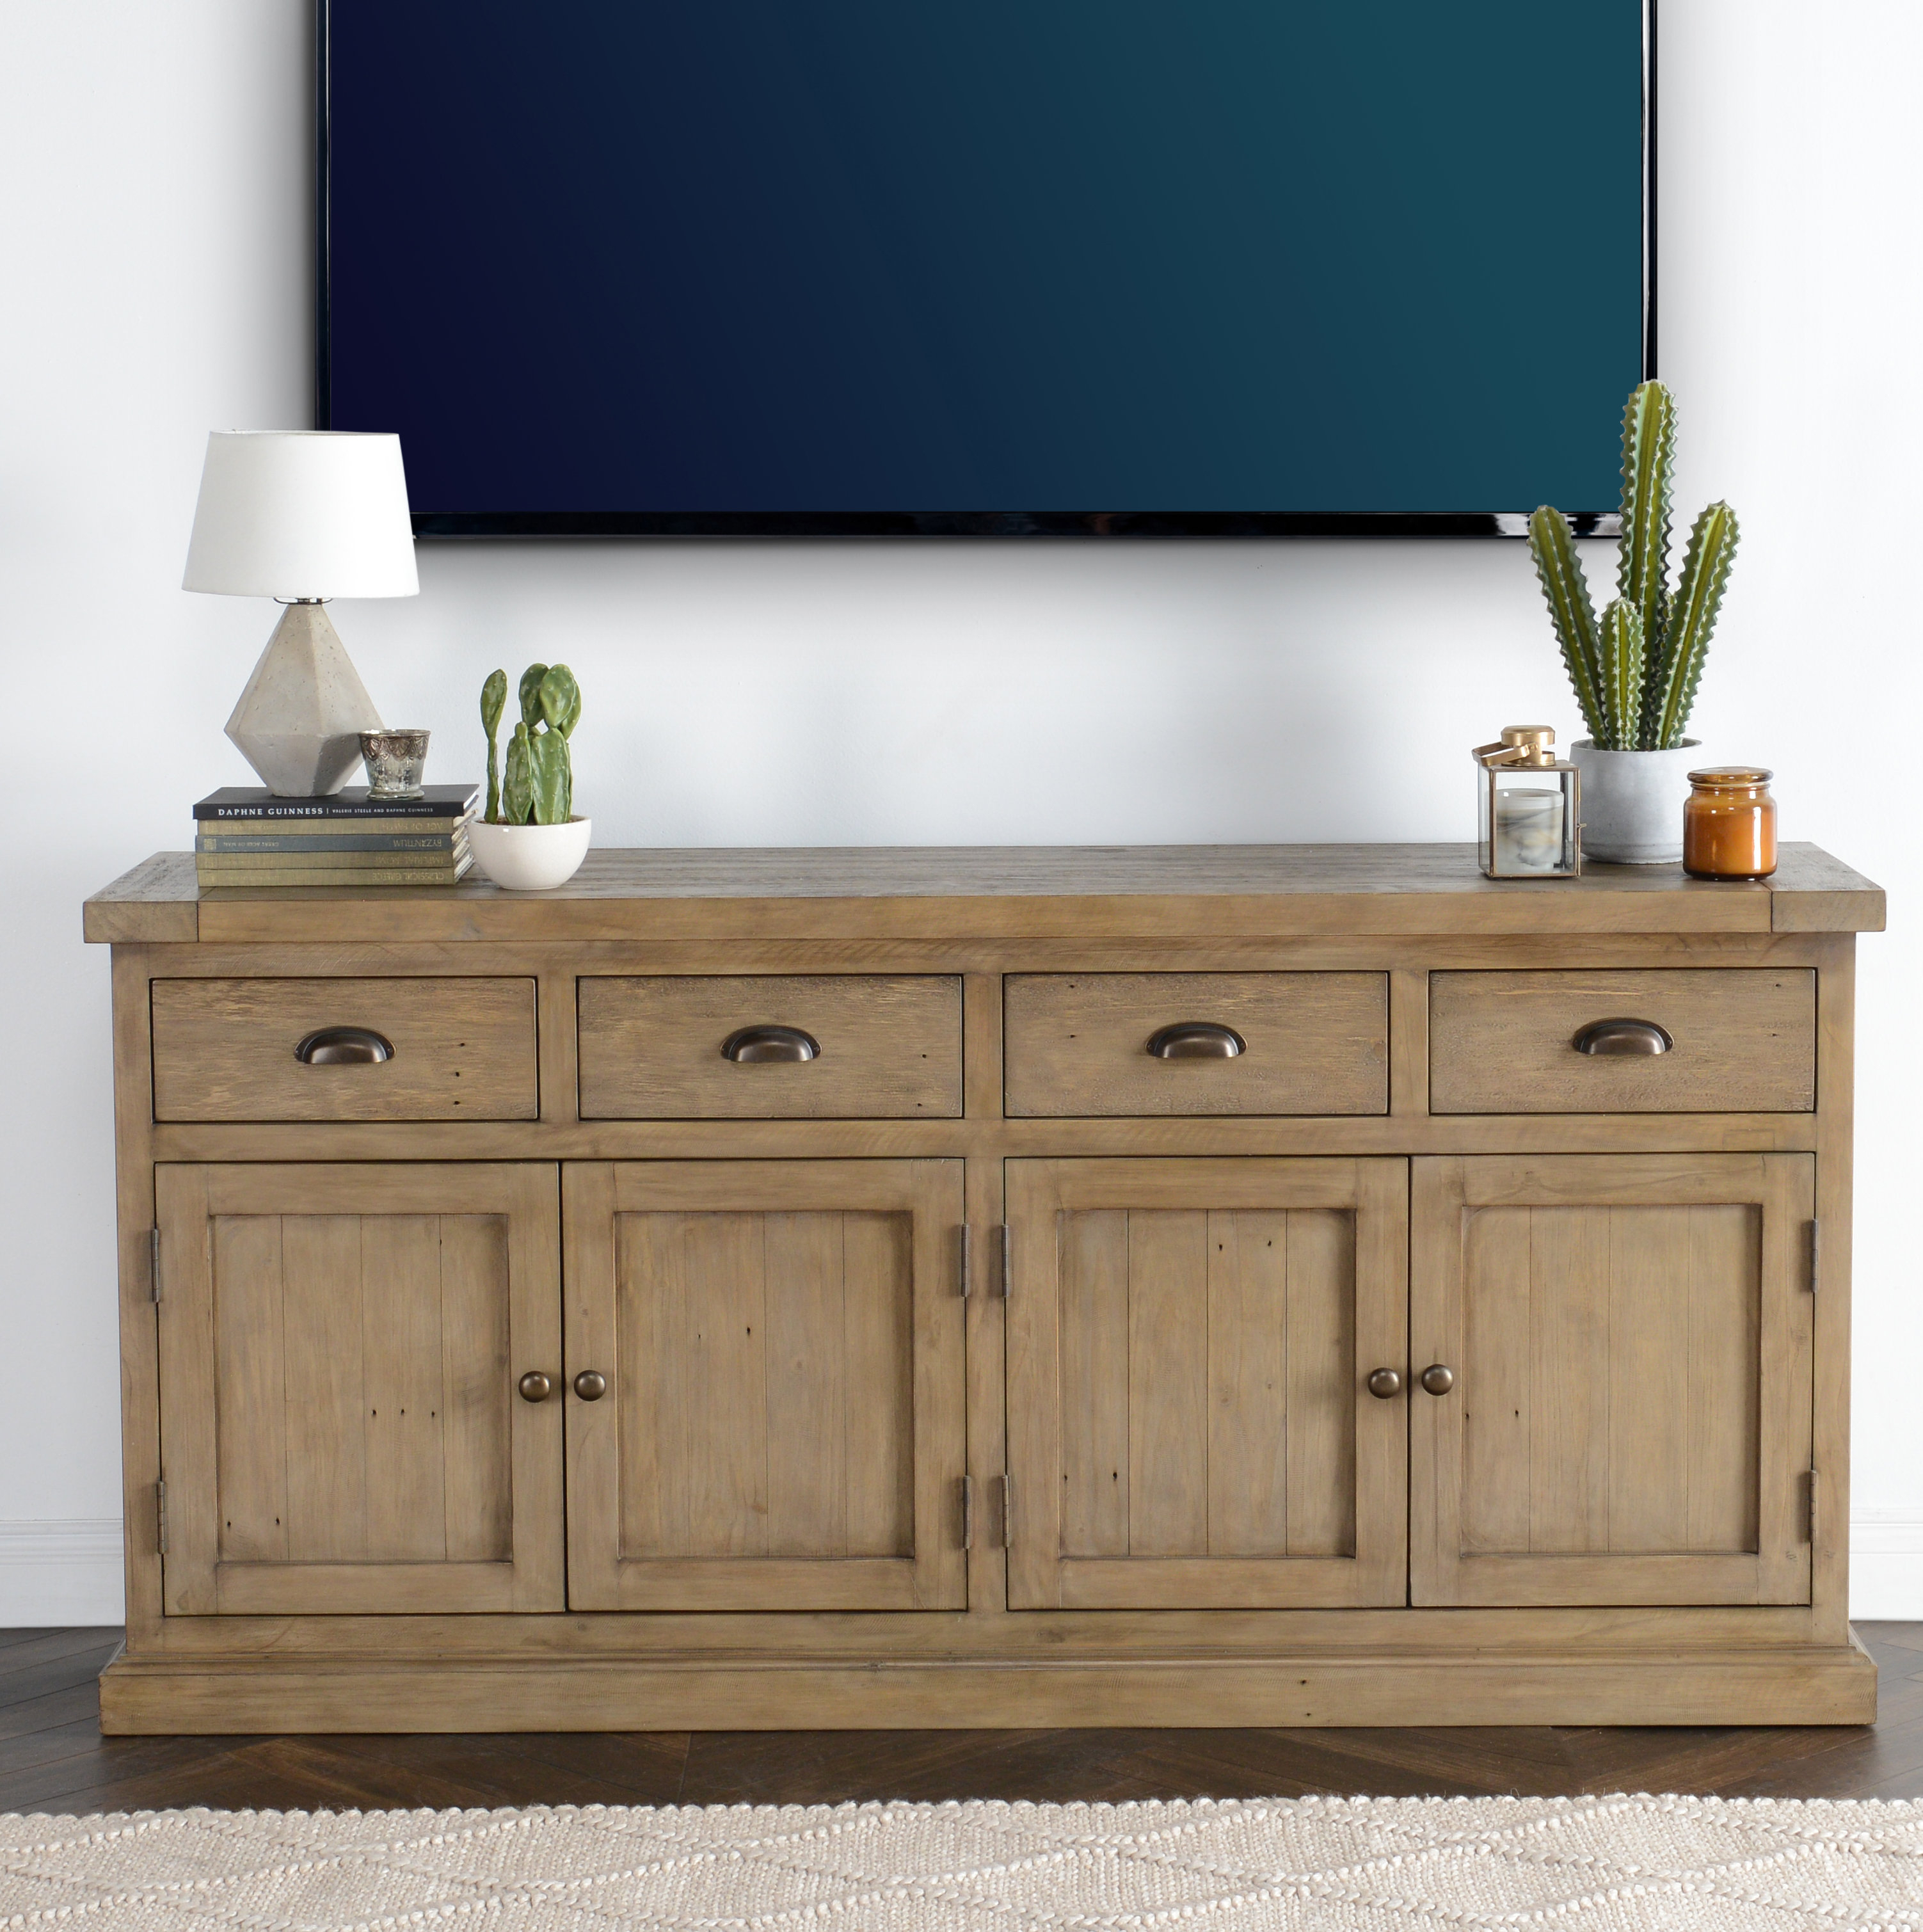 Farmhouse & Rustic Pine Sideboards & Buffets | Birch Lane For Best And Newest Chaffins Sideboards (#10 of 20)